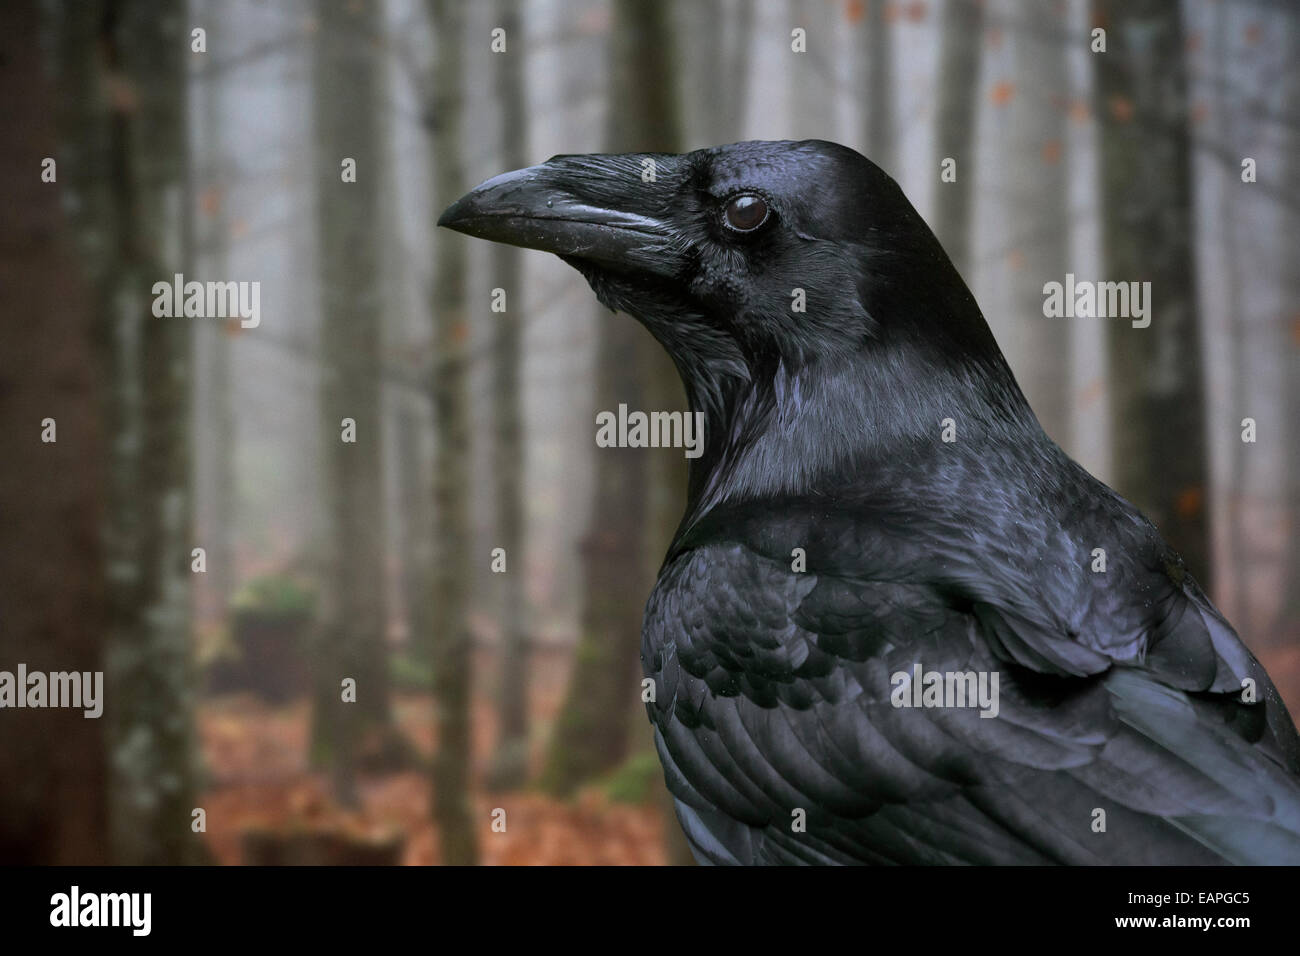 Close up of common raven / northern raven (Corvus corax) in autumn forest - Stock Image